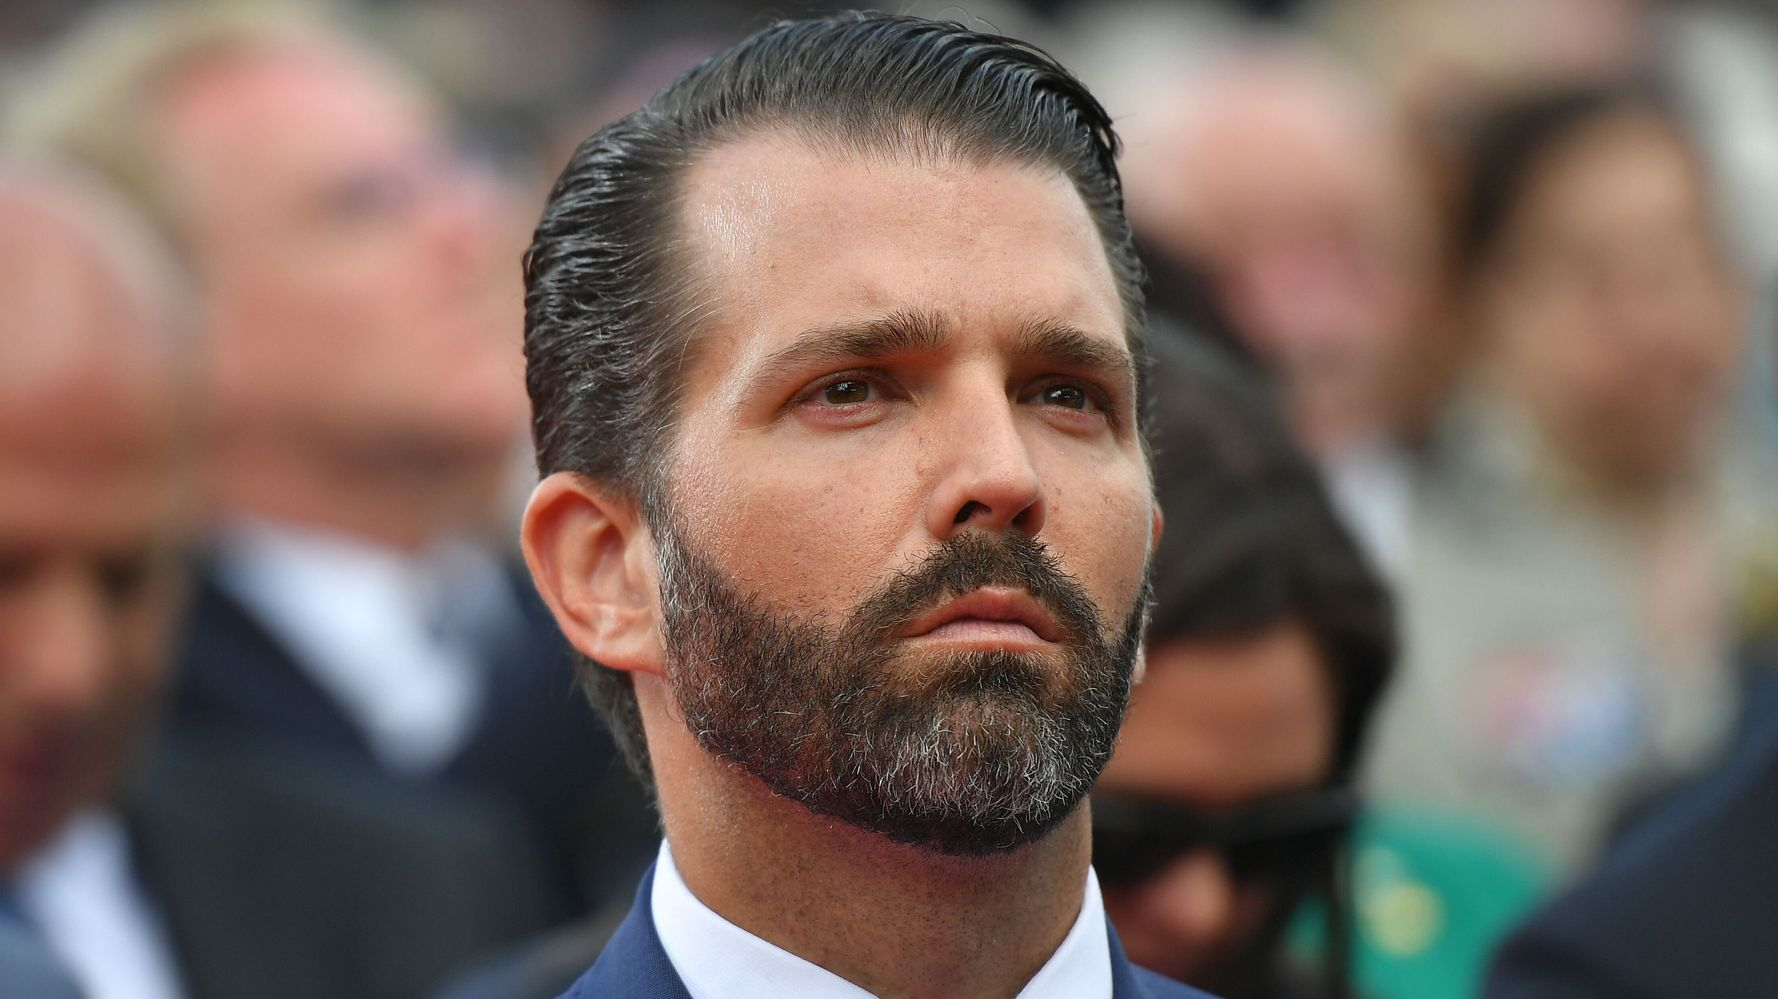 Donald Trump Jr.'s Oblivious Gripe About Nepotism Gets The Treatment On Twitter